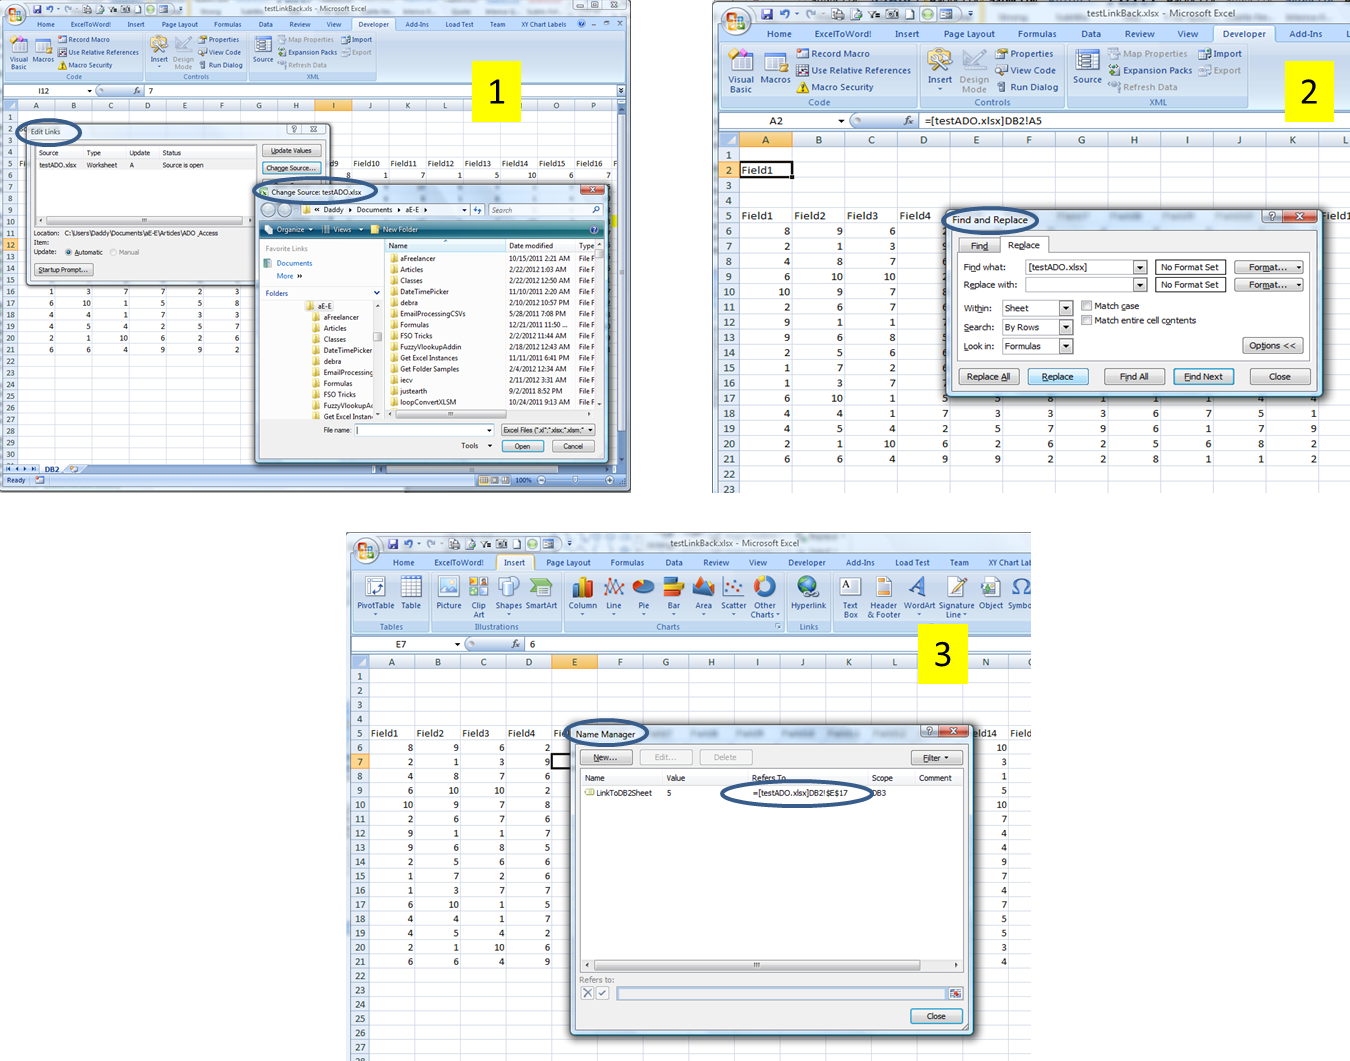 Workbooks copy formulas between workbooks : Workbook link problems after copying tabs to a new workbook?